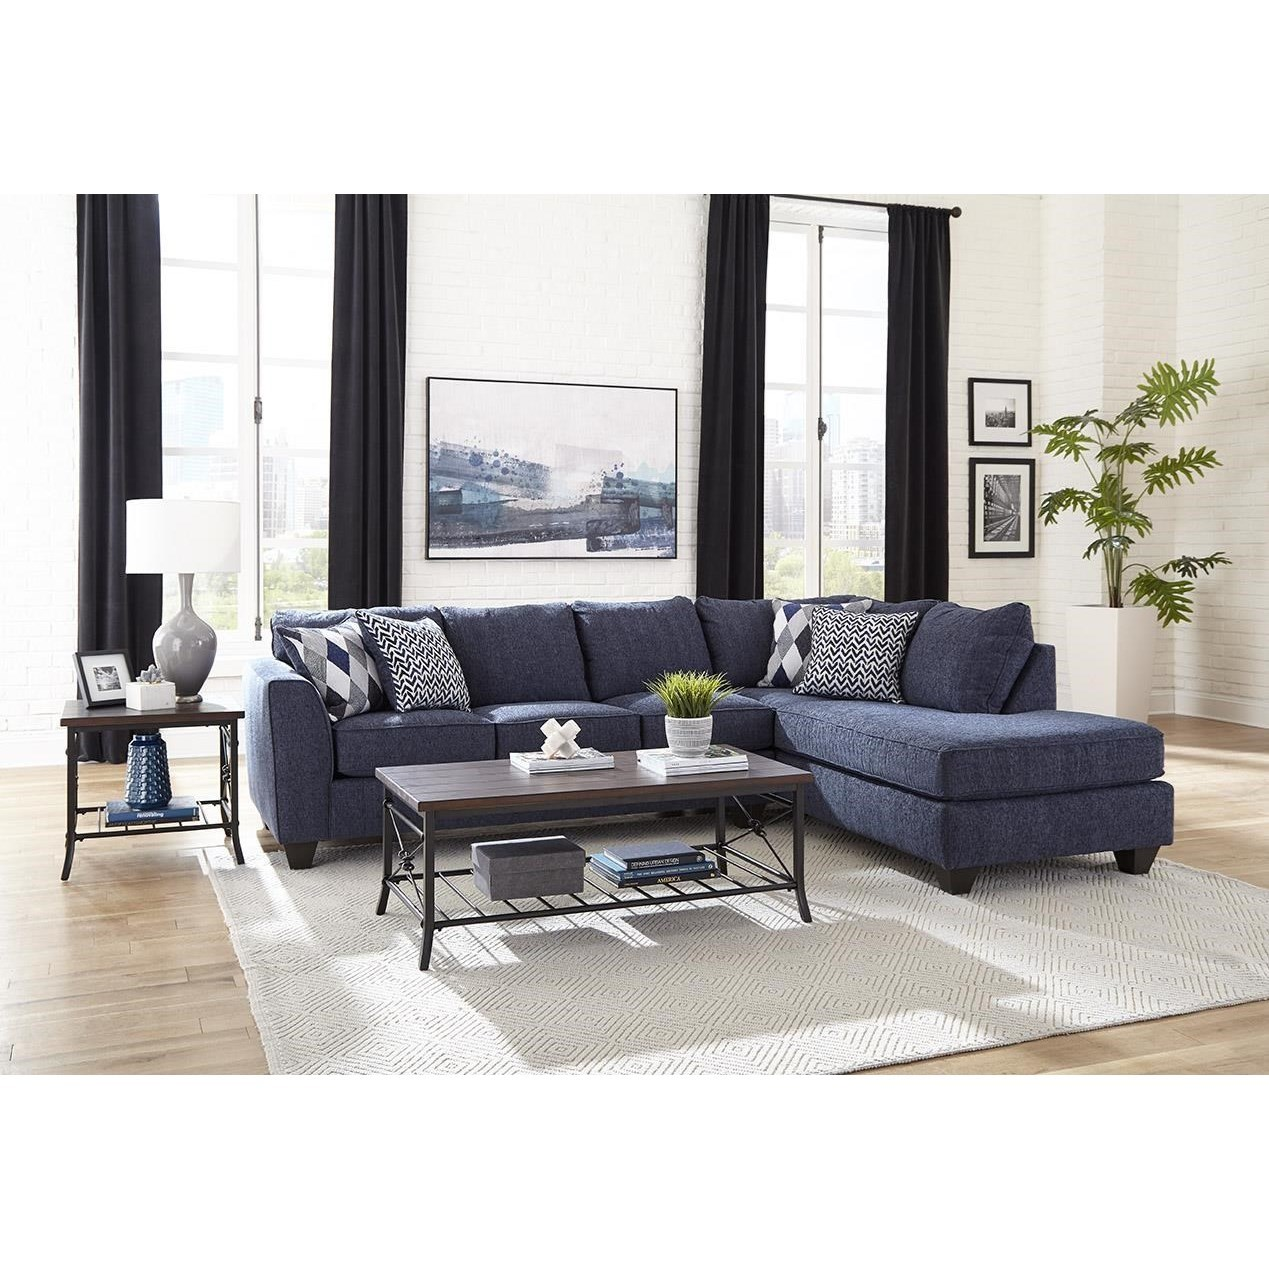 2256 Sectional with Chaise by Albany at A1 Furniture & Mattress